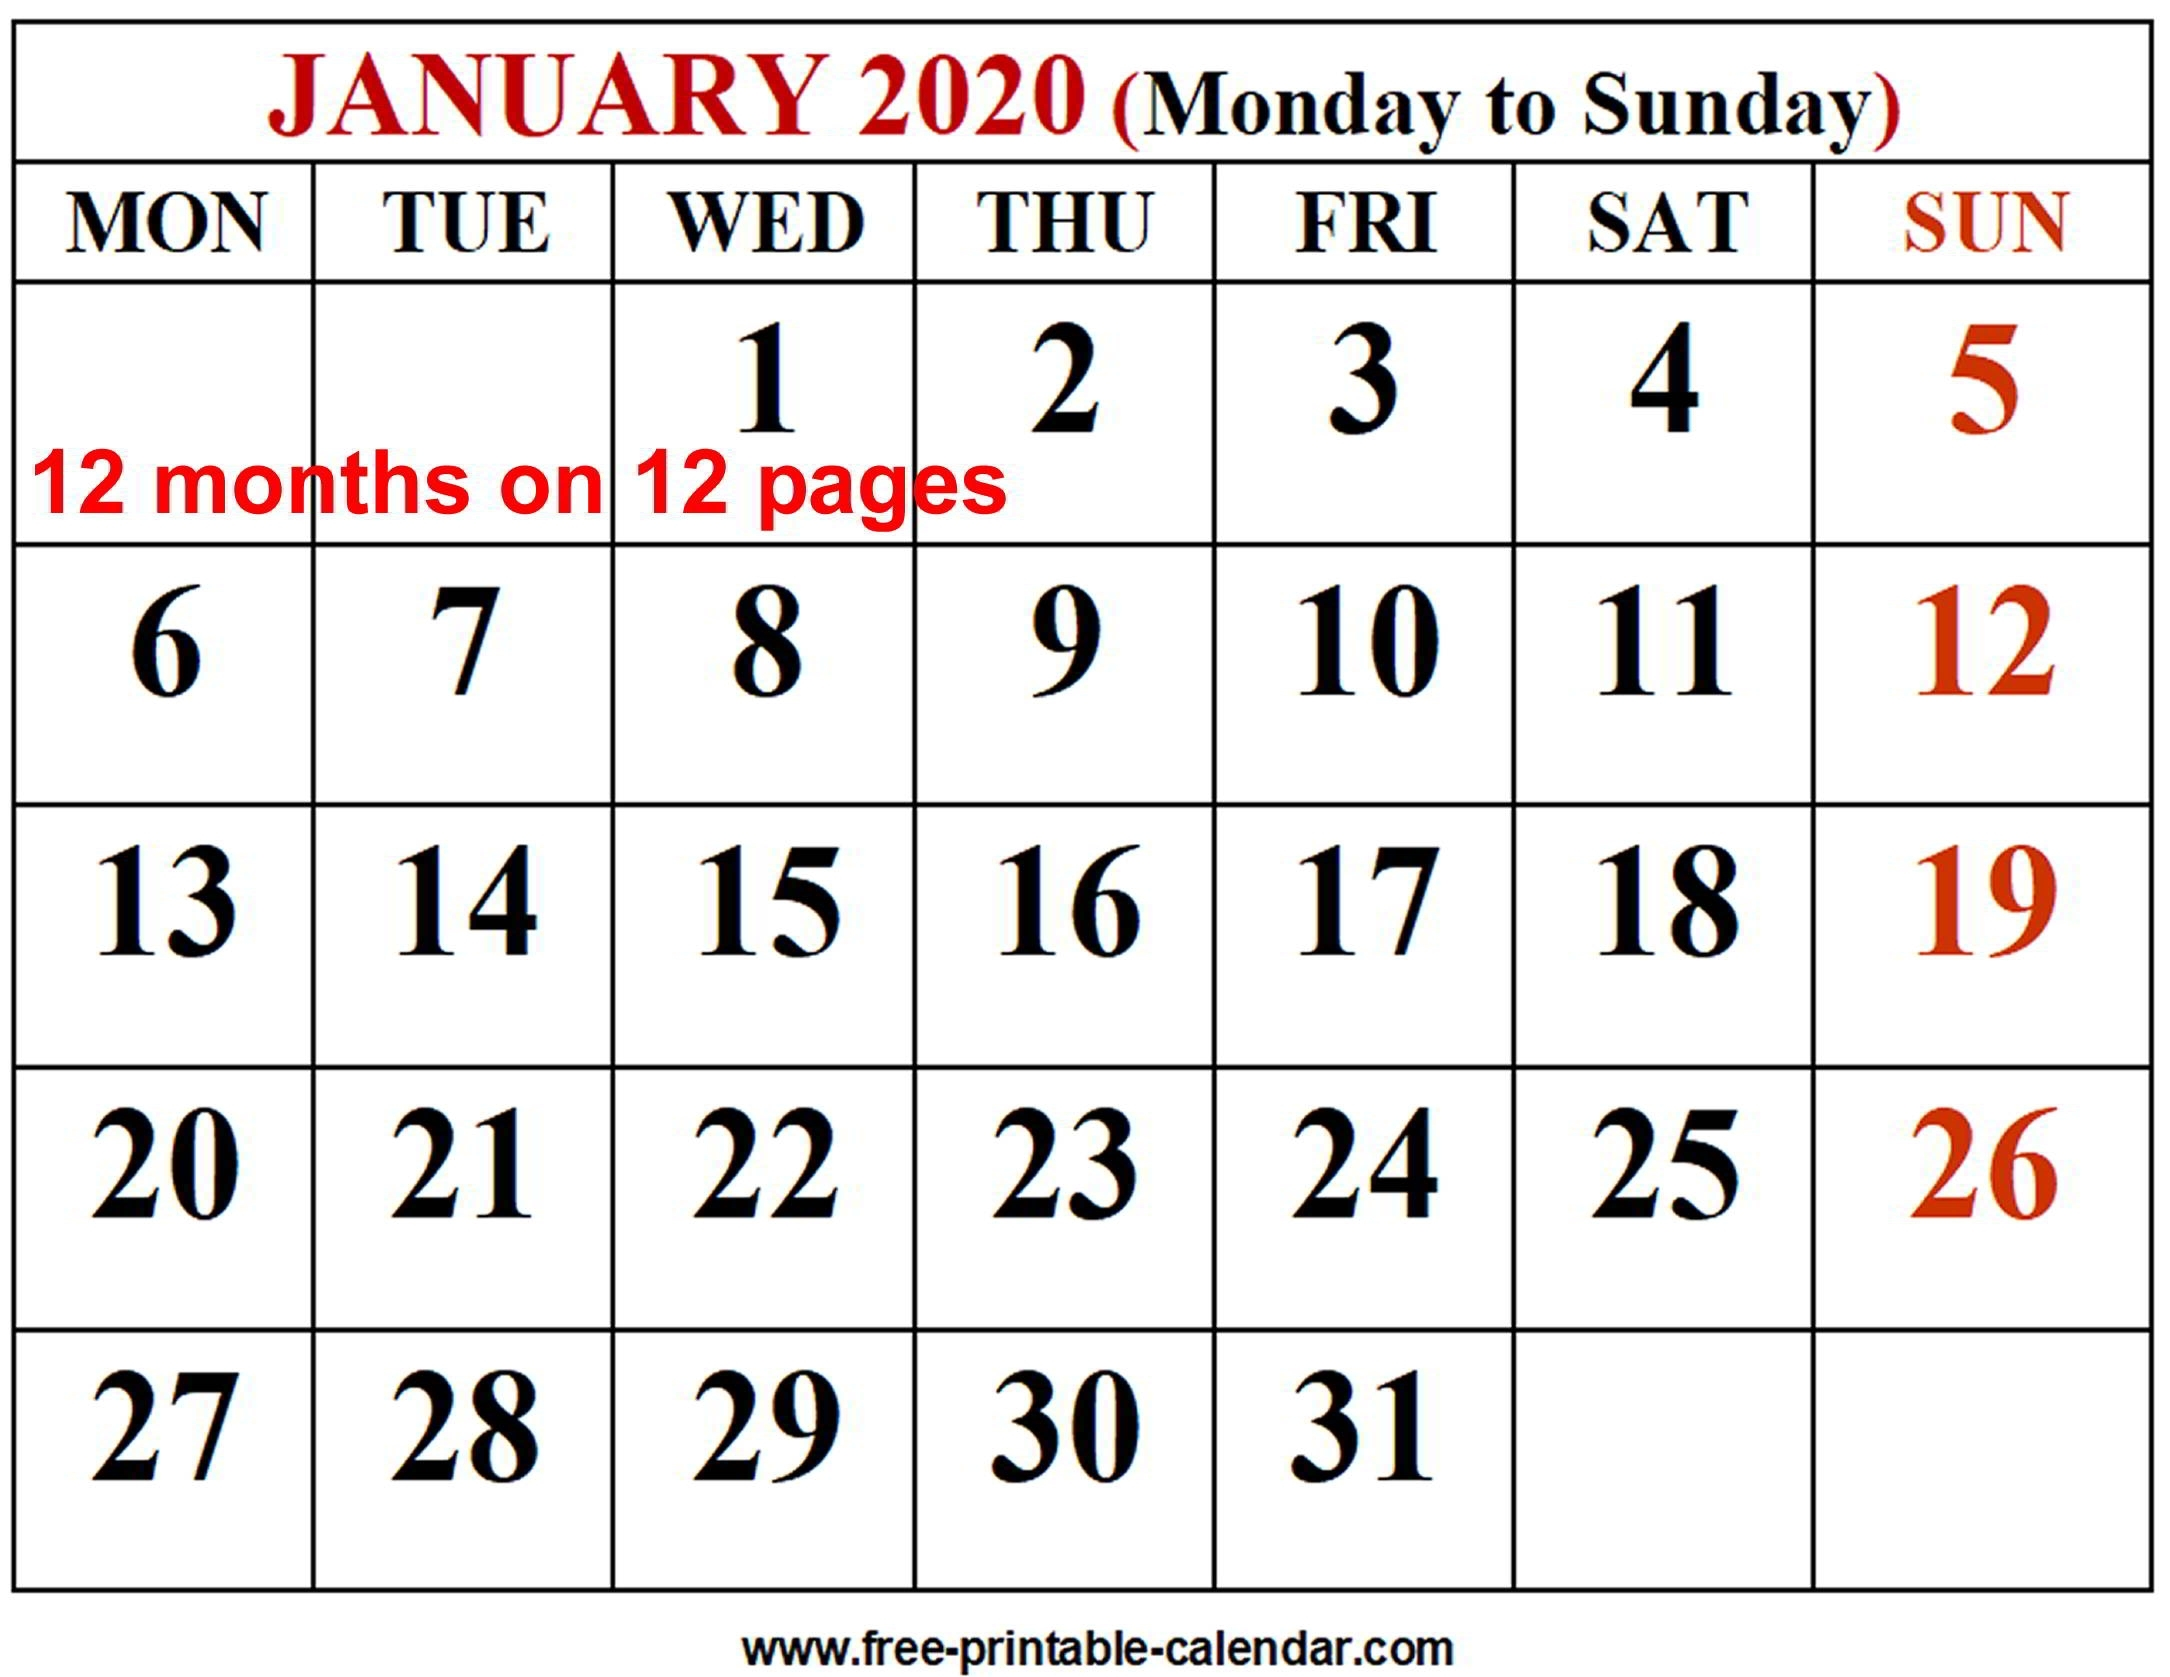 2020 Calendar Template - Free-Printable-Calendar for 2020 Free Printable Calendars That Start With Monday